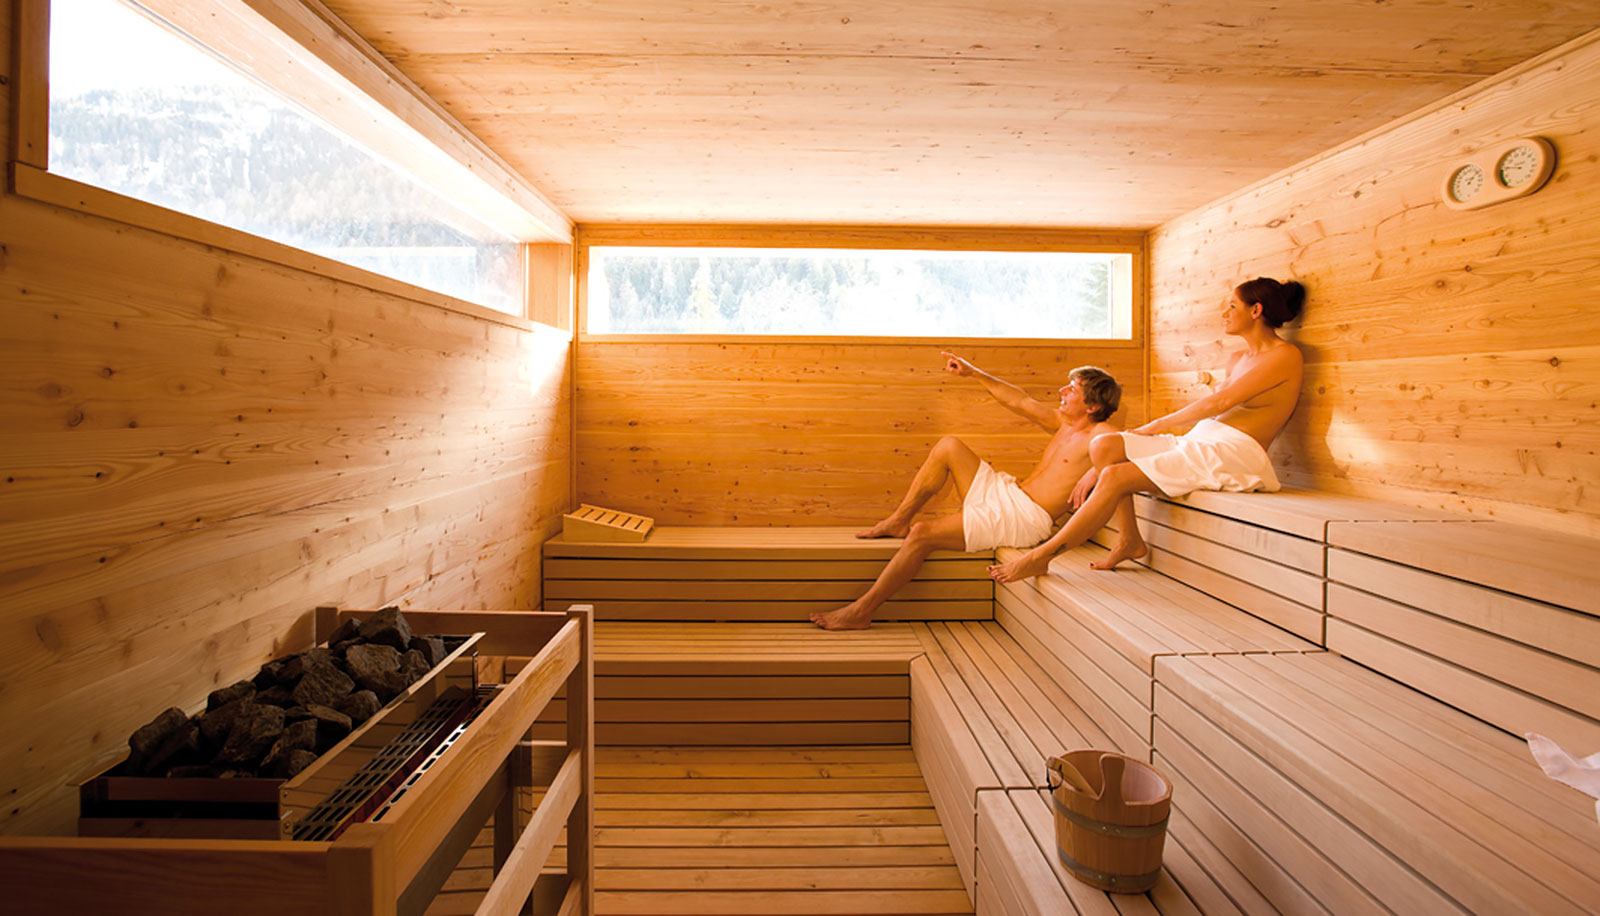 A woman and a men in the Finnish sauna of Arosea Life Balance Hotel in Ultental-Val d'Ultimo